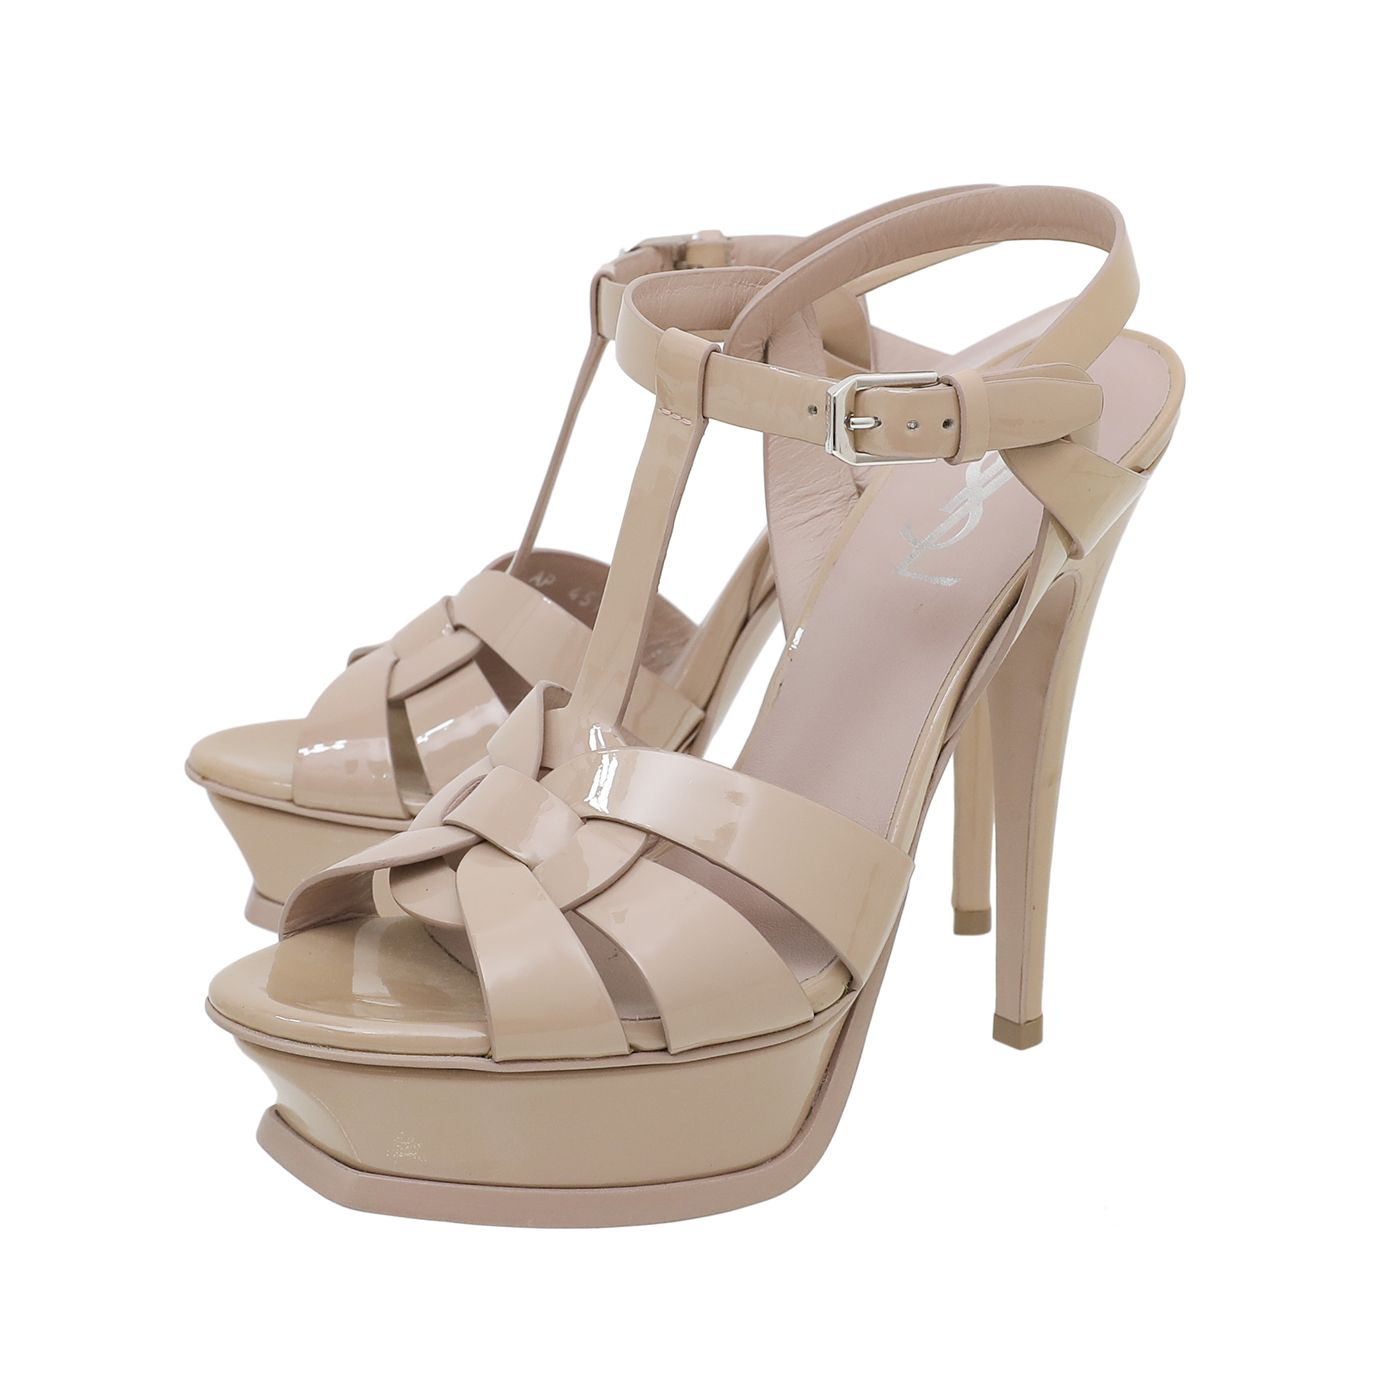 YSL Nude Tribute High Heeled Sandals 36